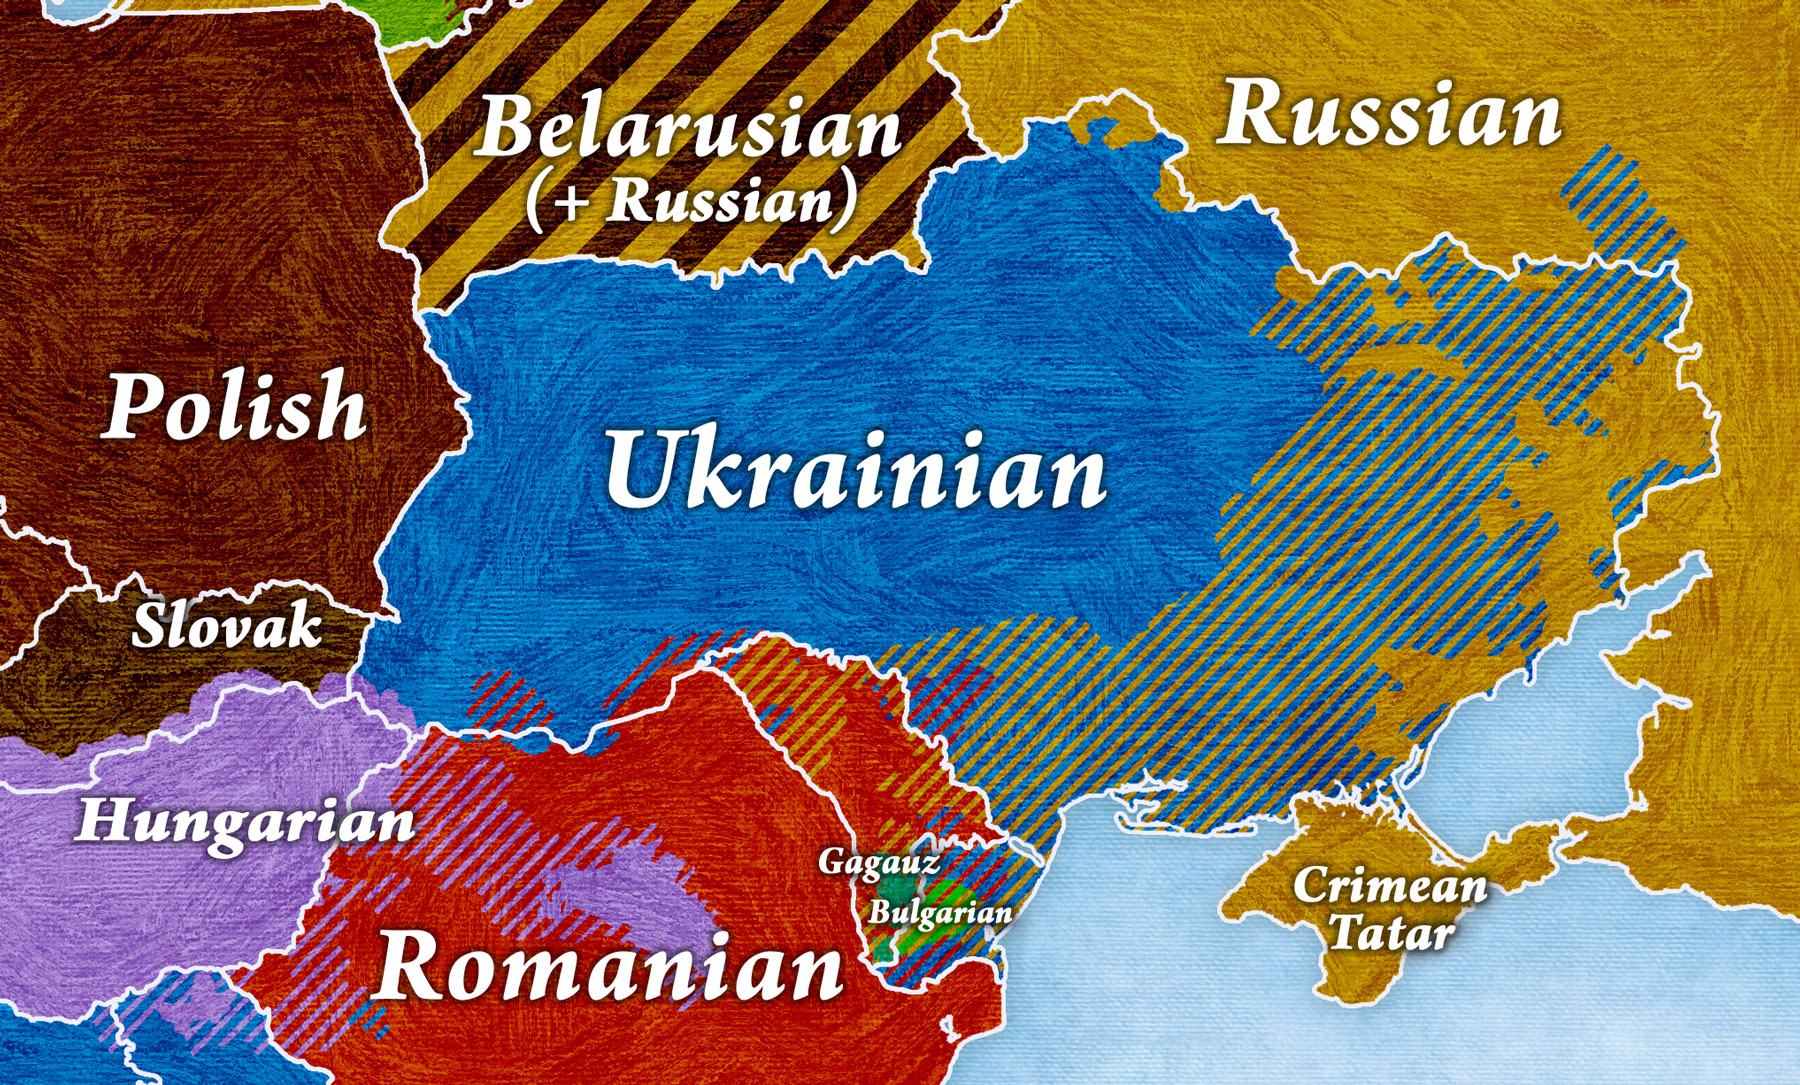 Ukraine in my linguistic maps on show map of eastern europe, show map of romania, show map of moscow, show map of georgia, show map of asia minor,